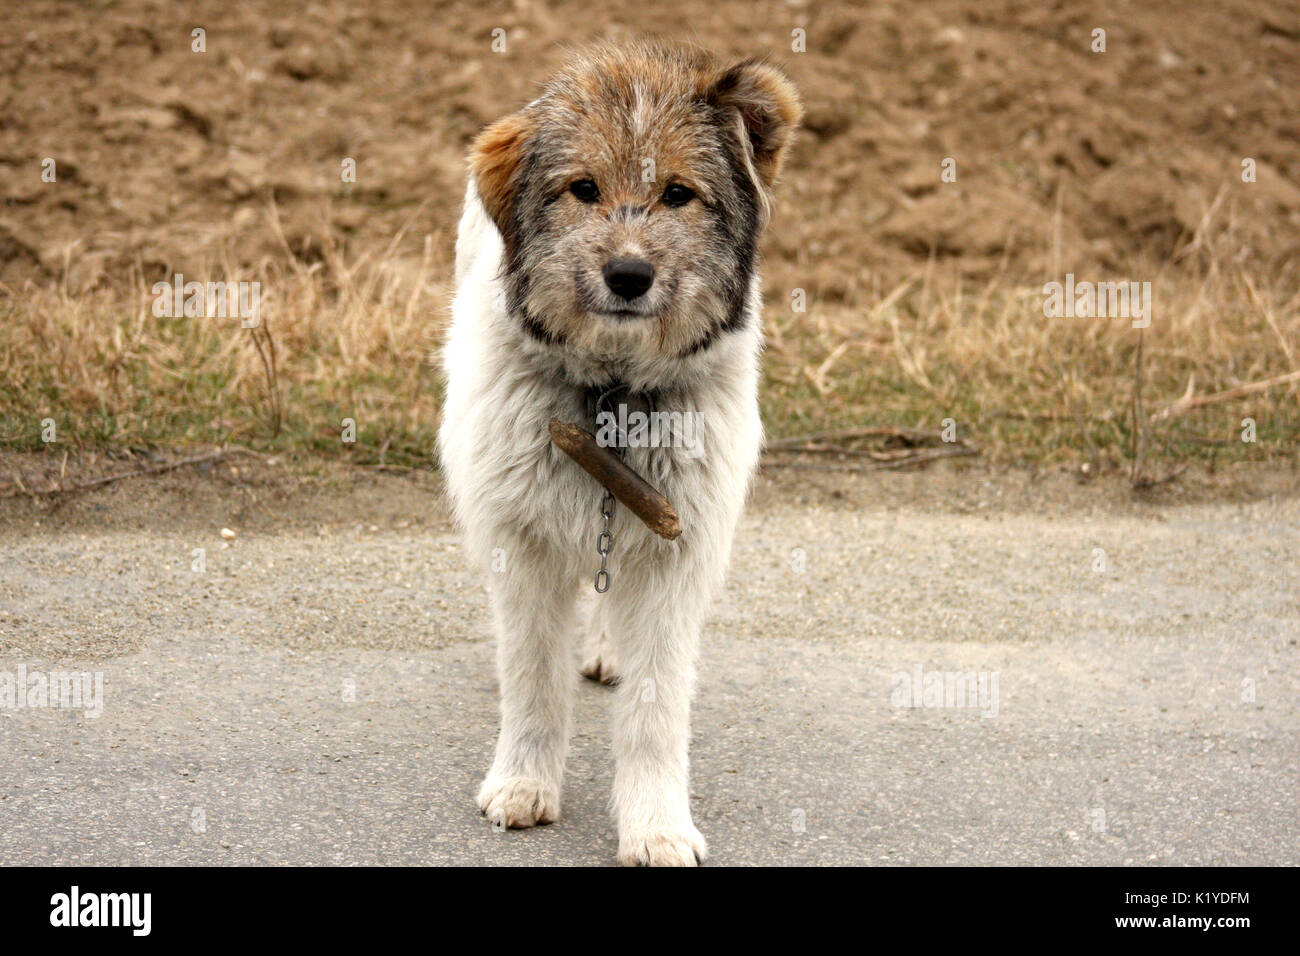 Guard dog in the yard - Stock Image